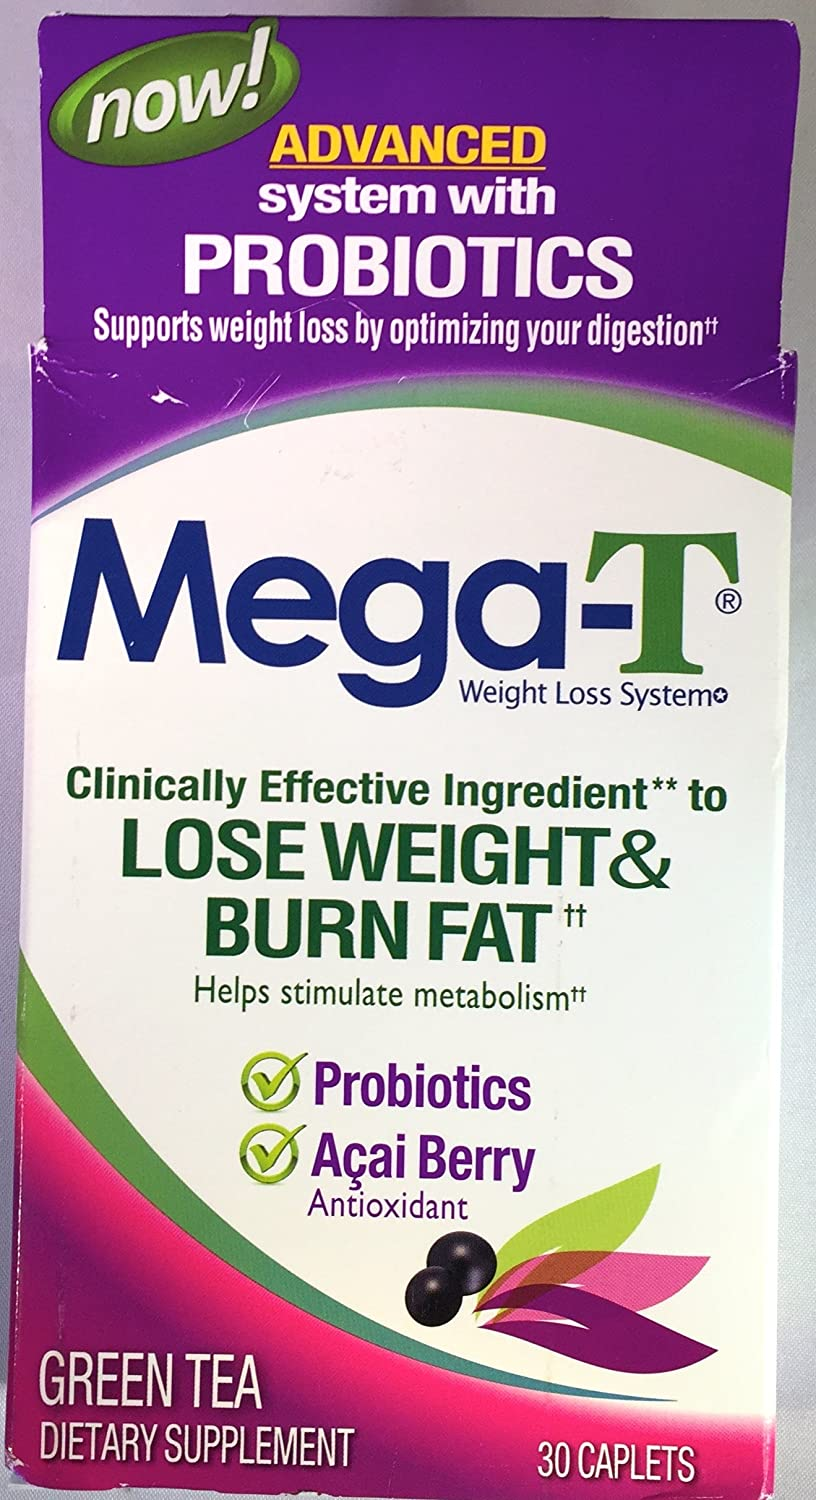 Hurrycat vorace weight loss would suggest using